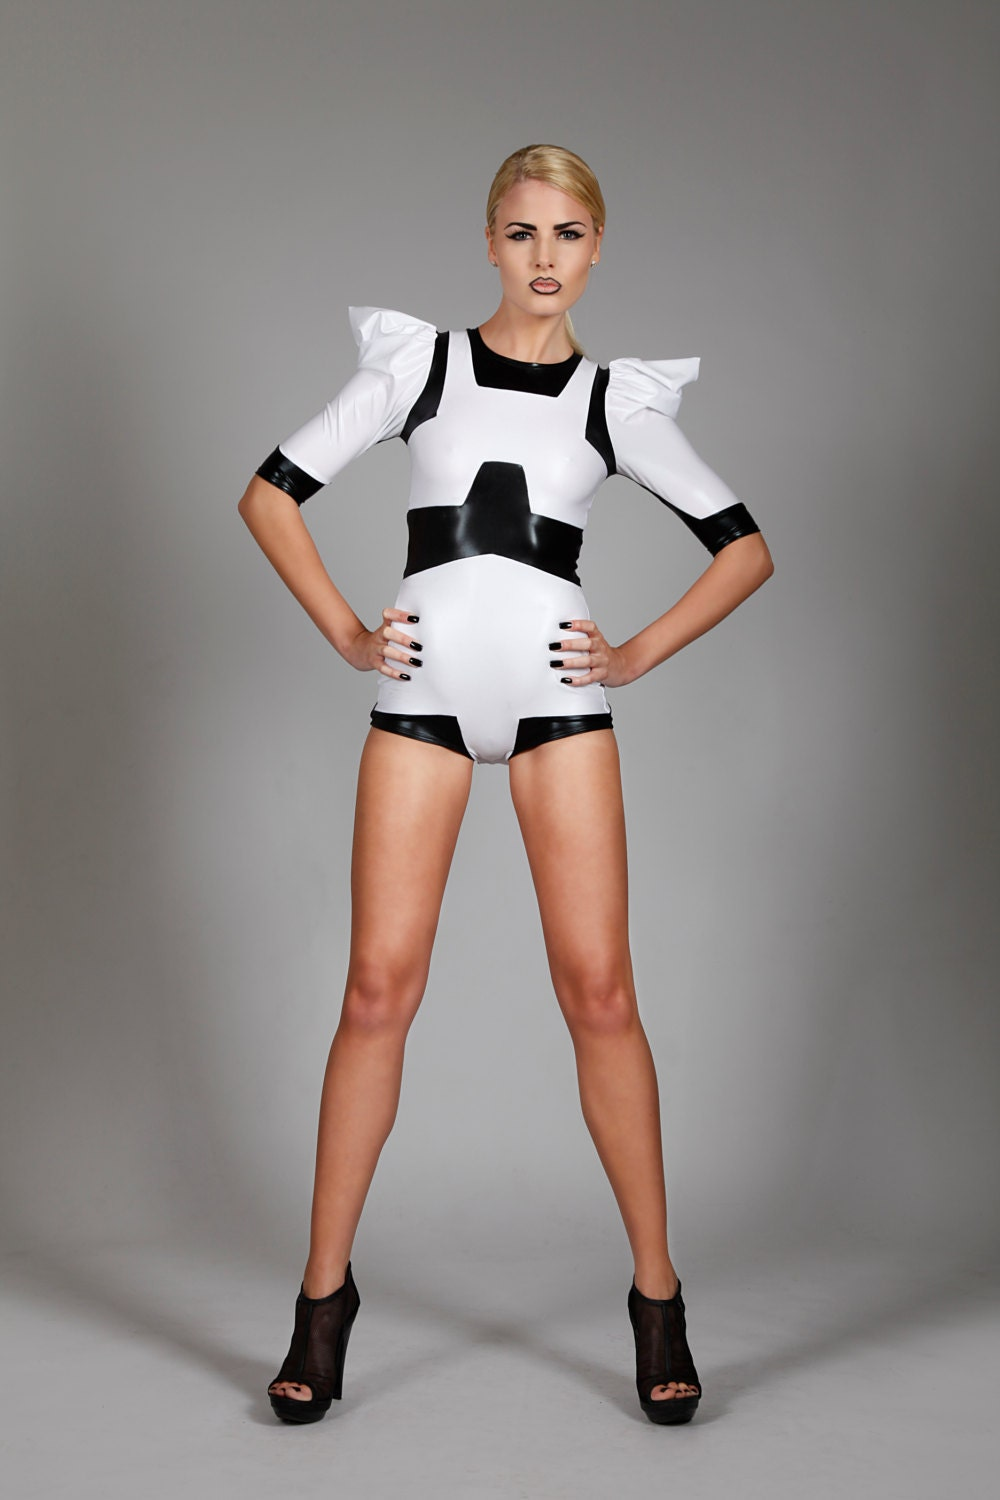 Find great deals on eBay for White Spandex Bodysuit in Unisex Theater and Reenactment Costumes. Shop with confidence.